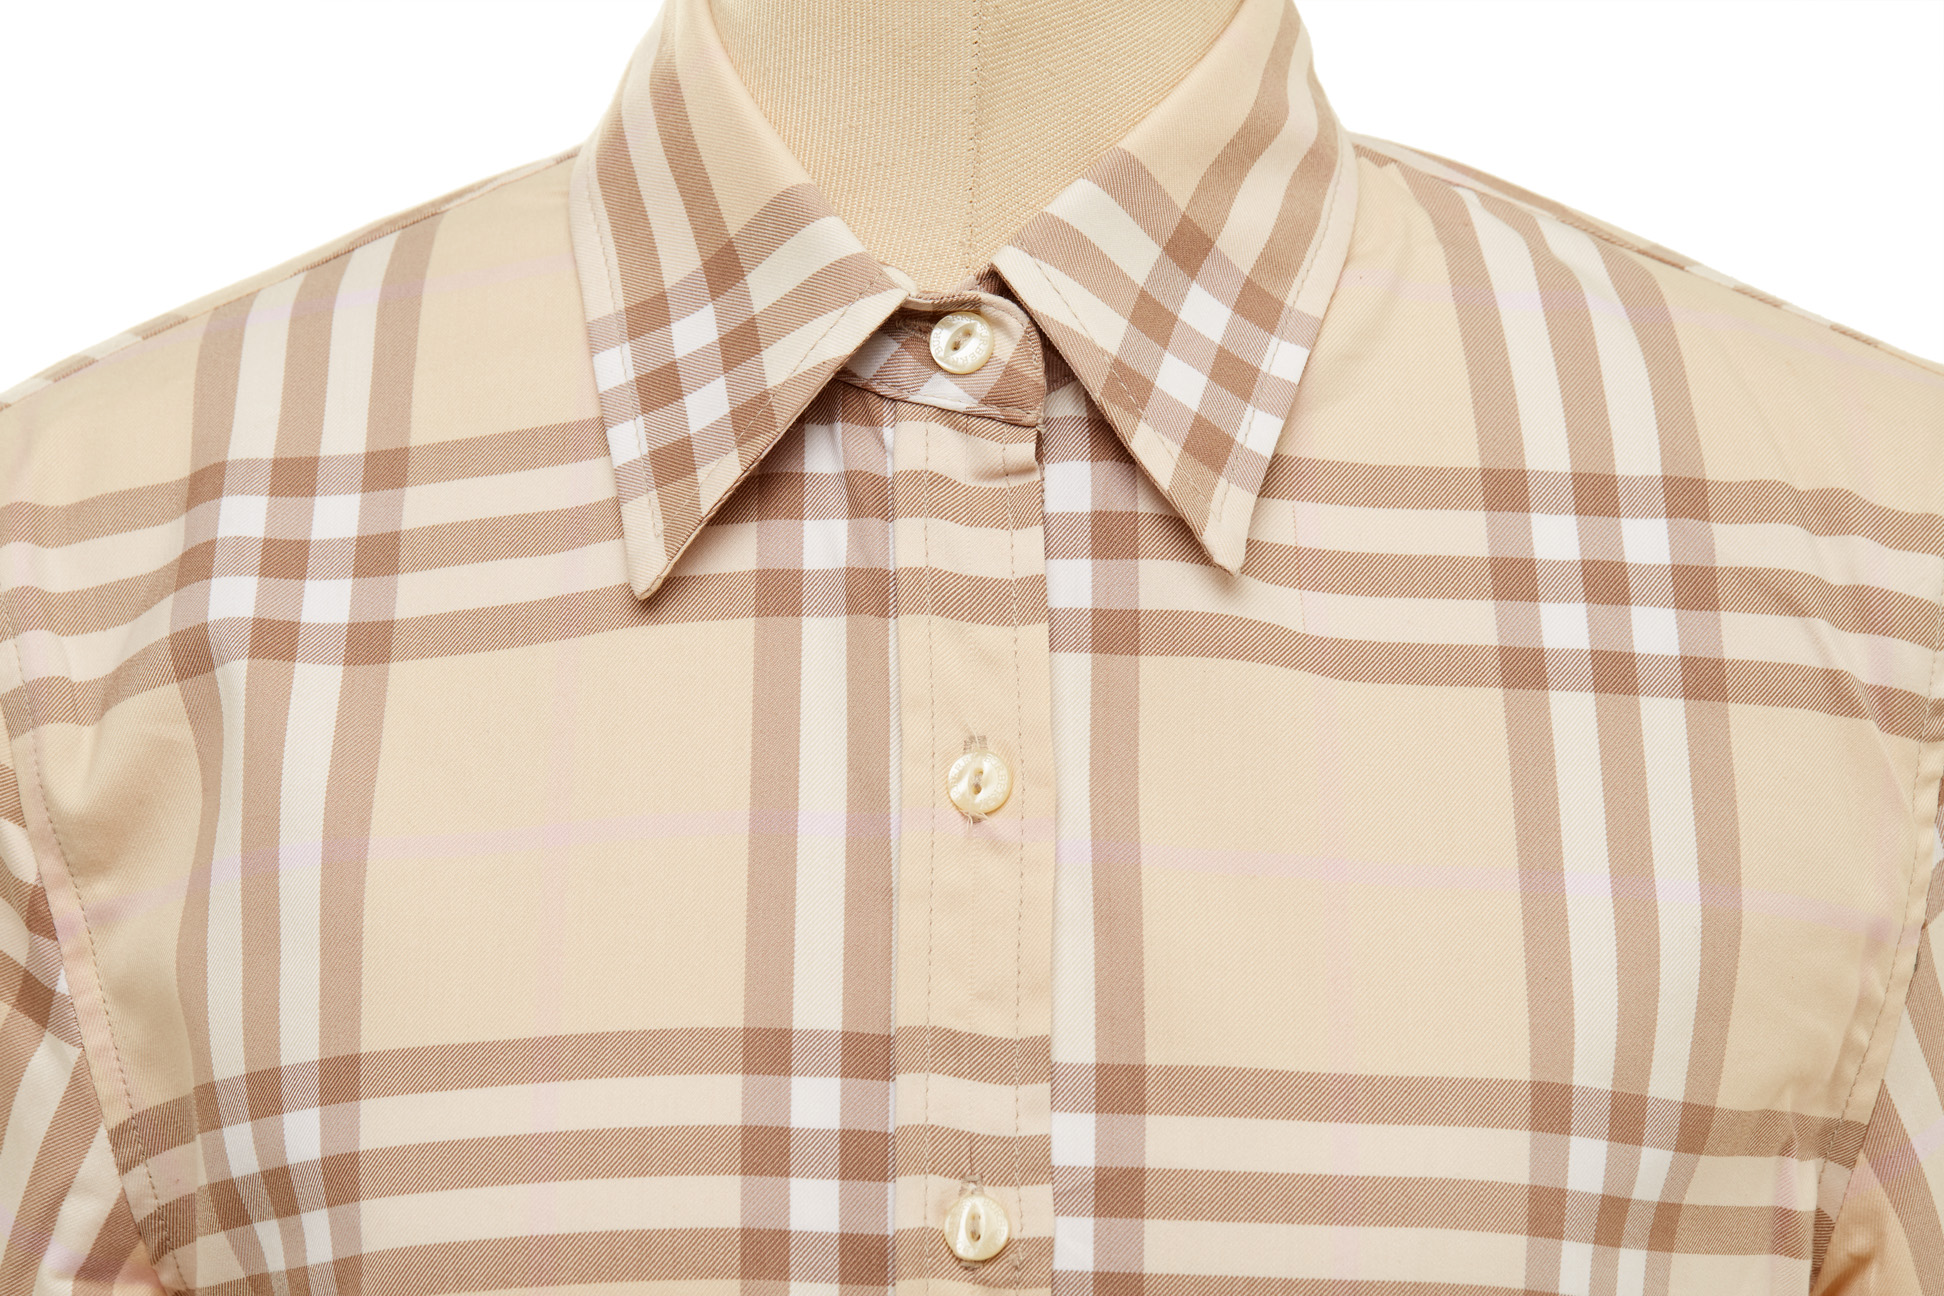 A BURBERRY BEIGE CHECK BUTTON-UP SHIRT - Image 2 of 3